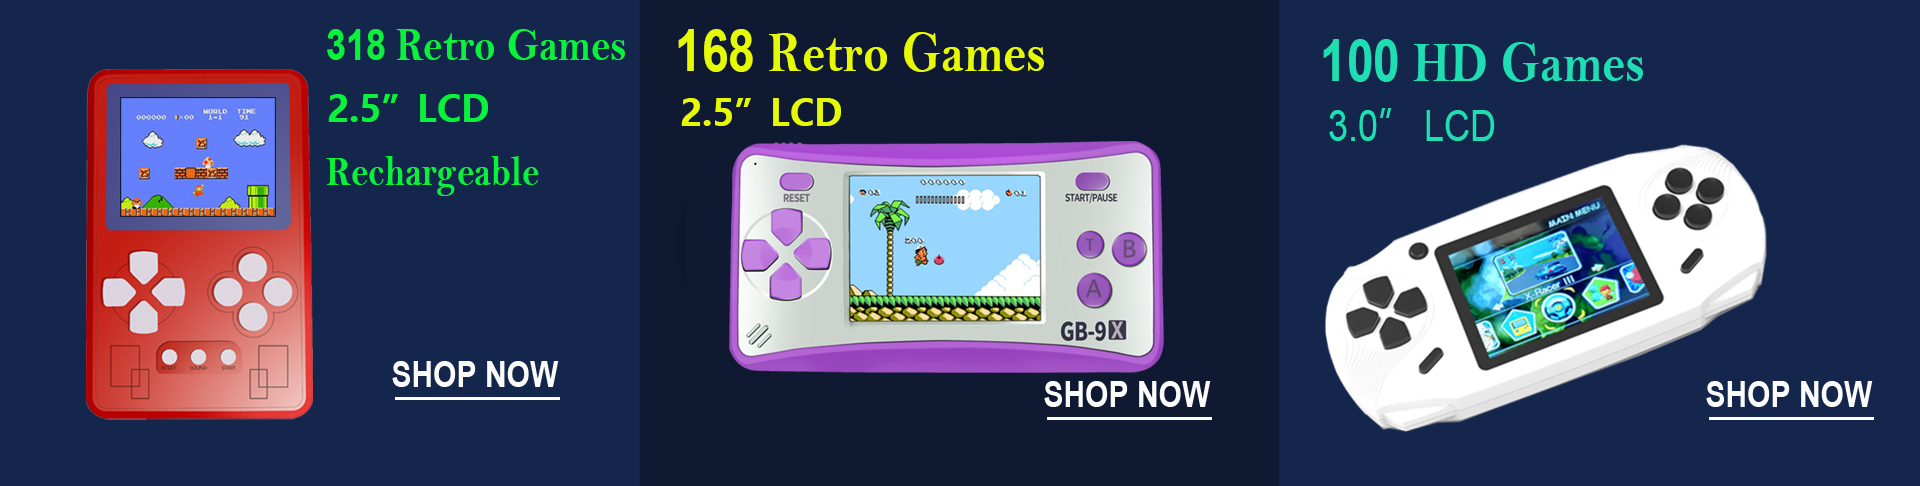 retro handheld game console for kids